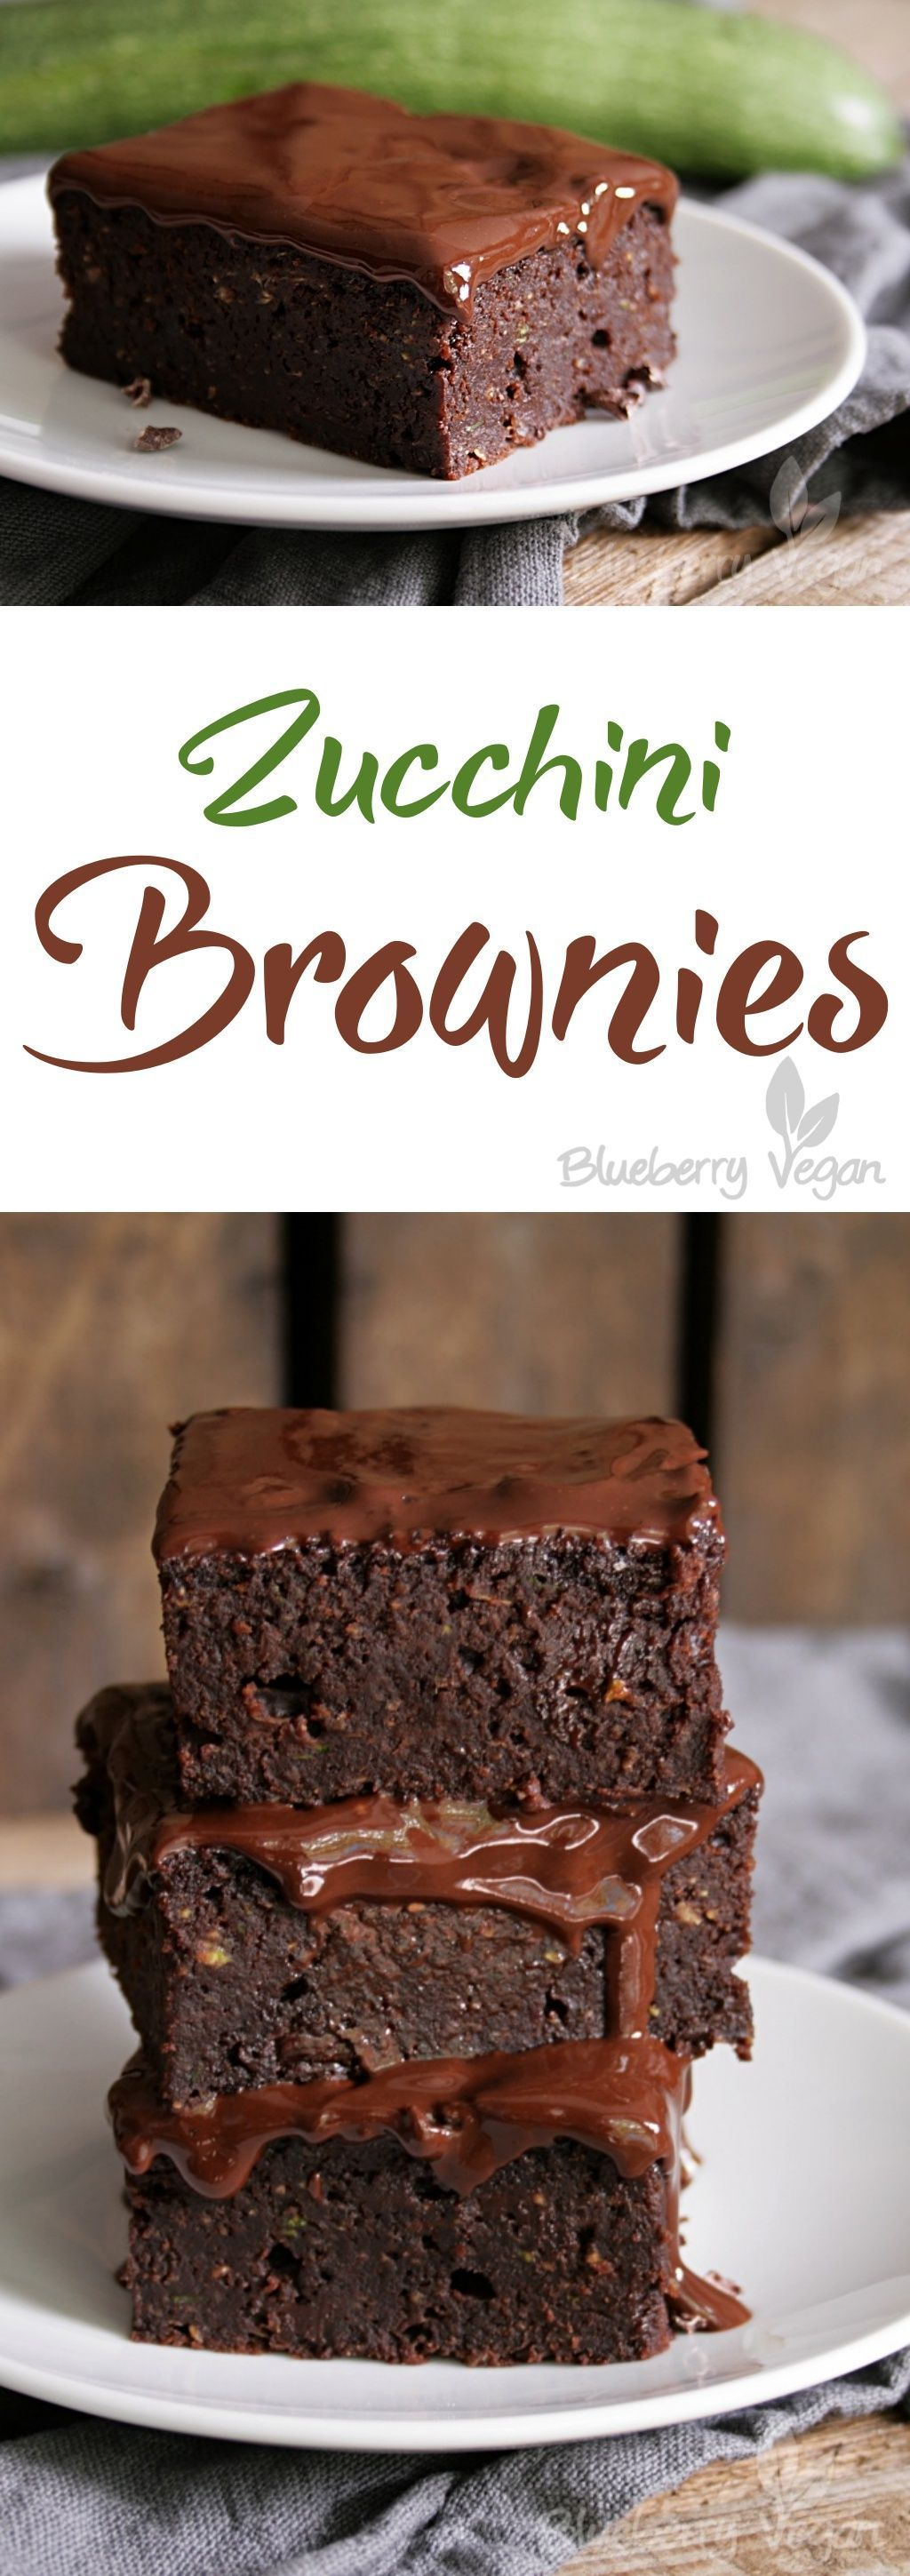 ZucchiniBrownies Mit Leckerem Guss ZucchiniBrownies mit leckerem Guss Vegan Cake vegan zucchini cakes